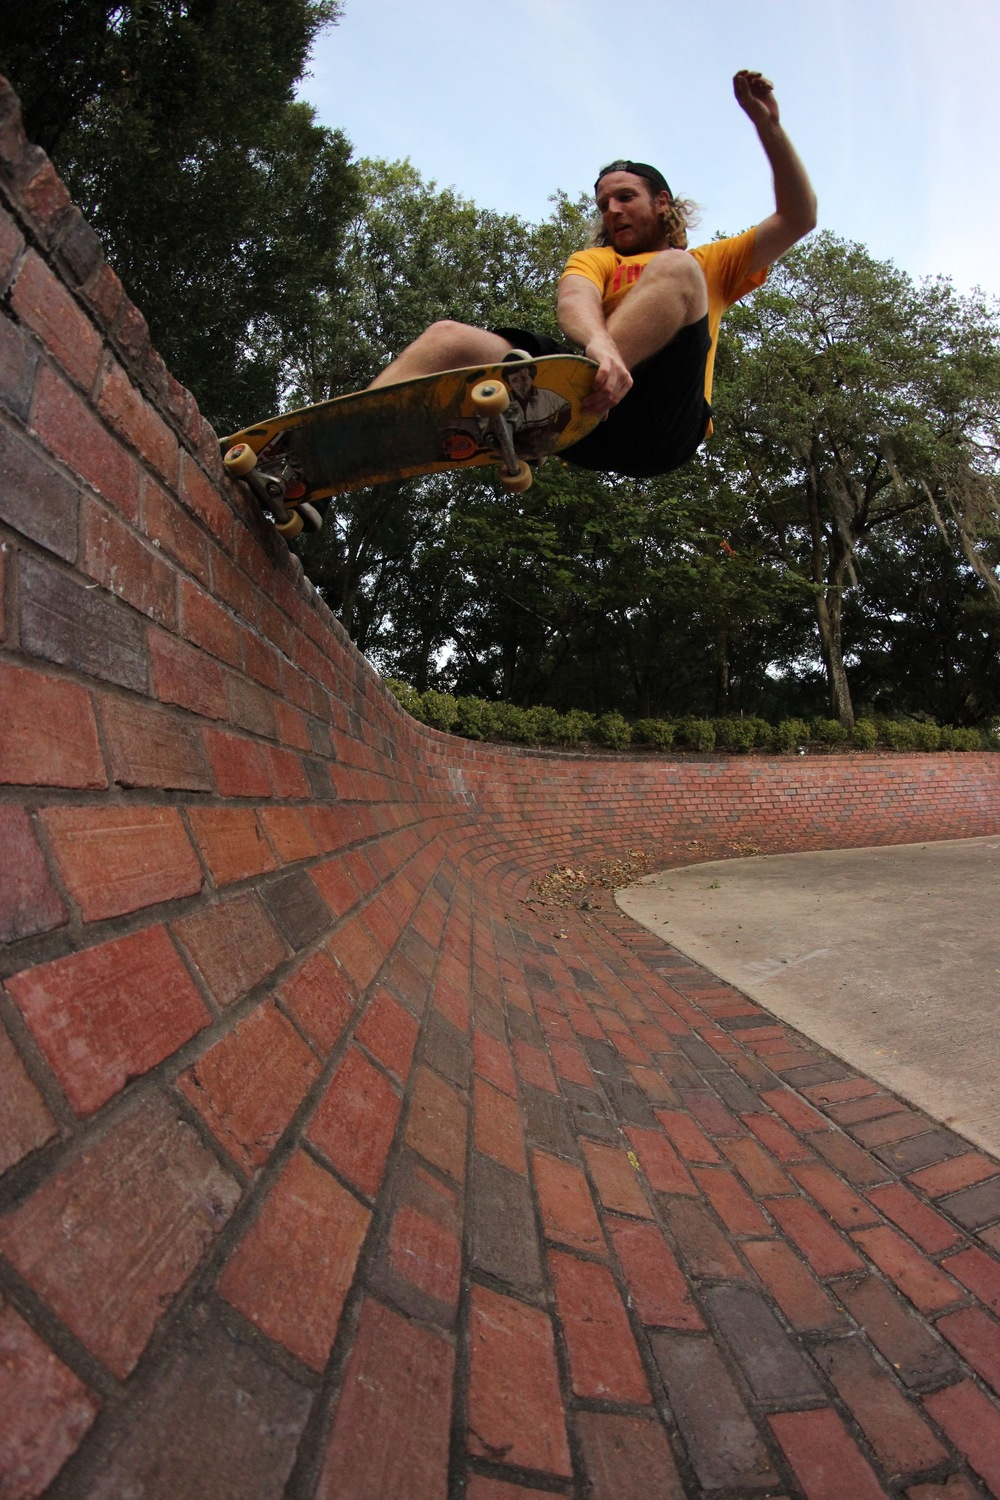 Gabe - Crail tail in Orlando, FL